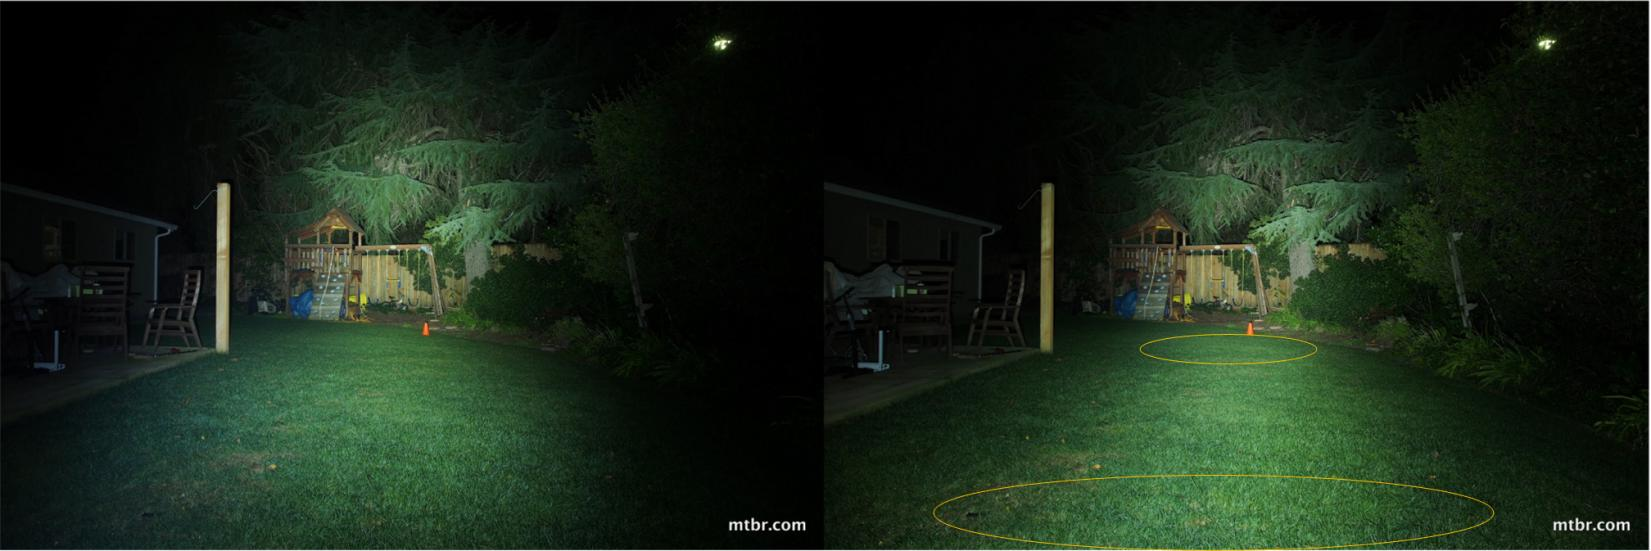 Name:  GlowormX2_vs_DS1300_annotated.jpg Views: 1512 Size:  101.4 KB